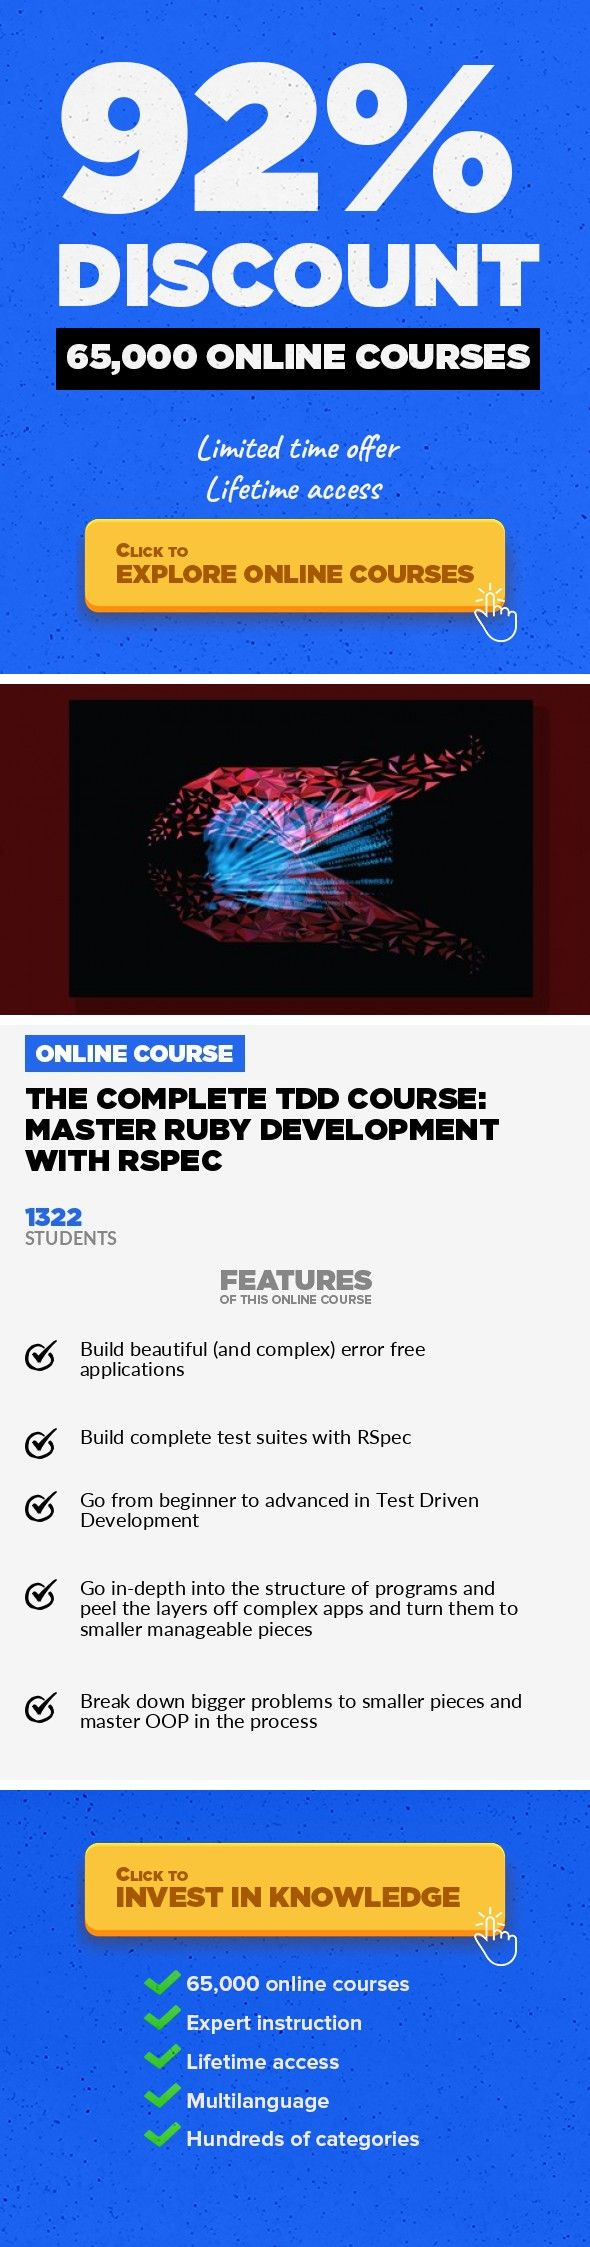 Mejores 119 imgenes de writing skills en pinterest the complete tdd course master ruby development with rspec programming languages development onlinecourses coursesfree onlinelearninglogo volume 1 fandeluxe Gallery